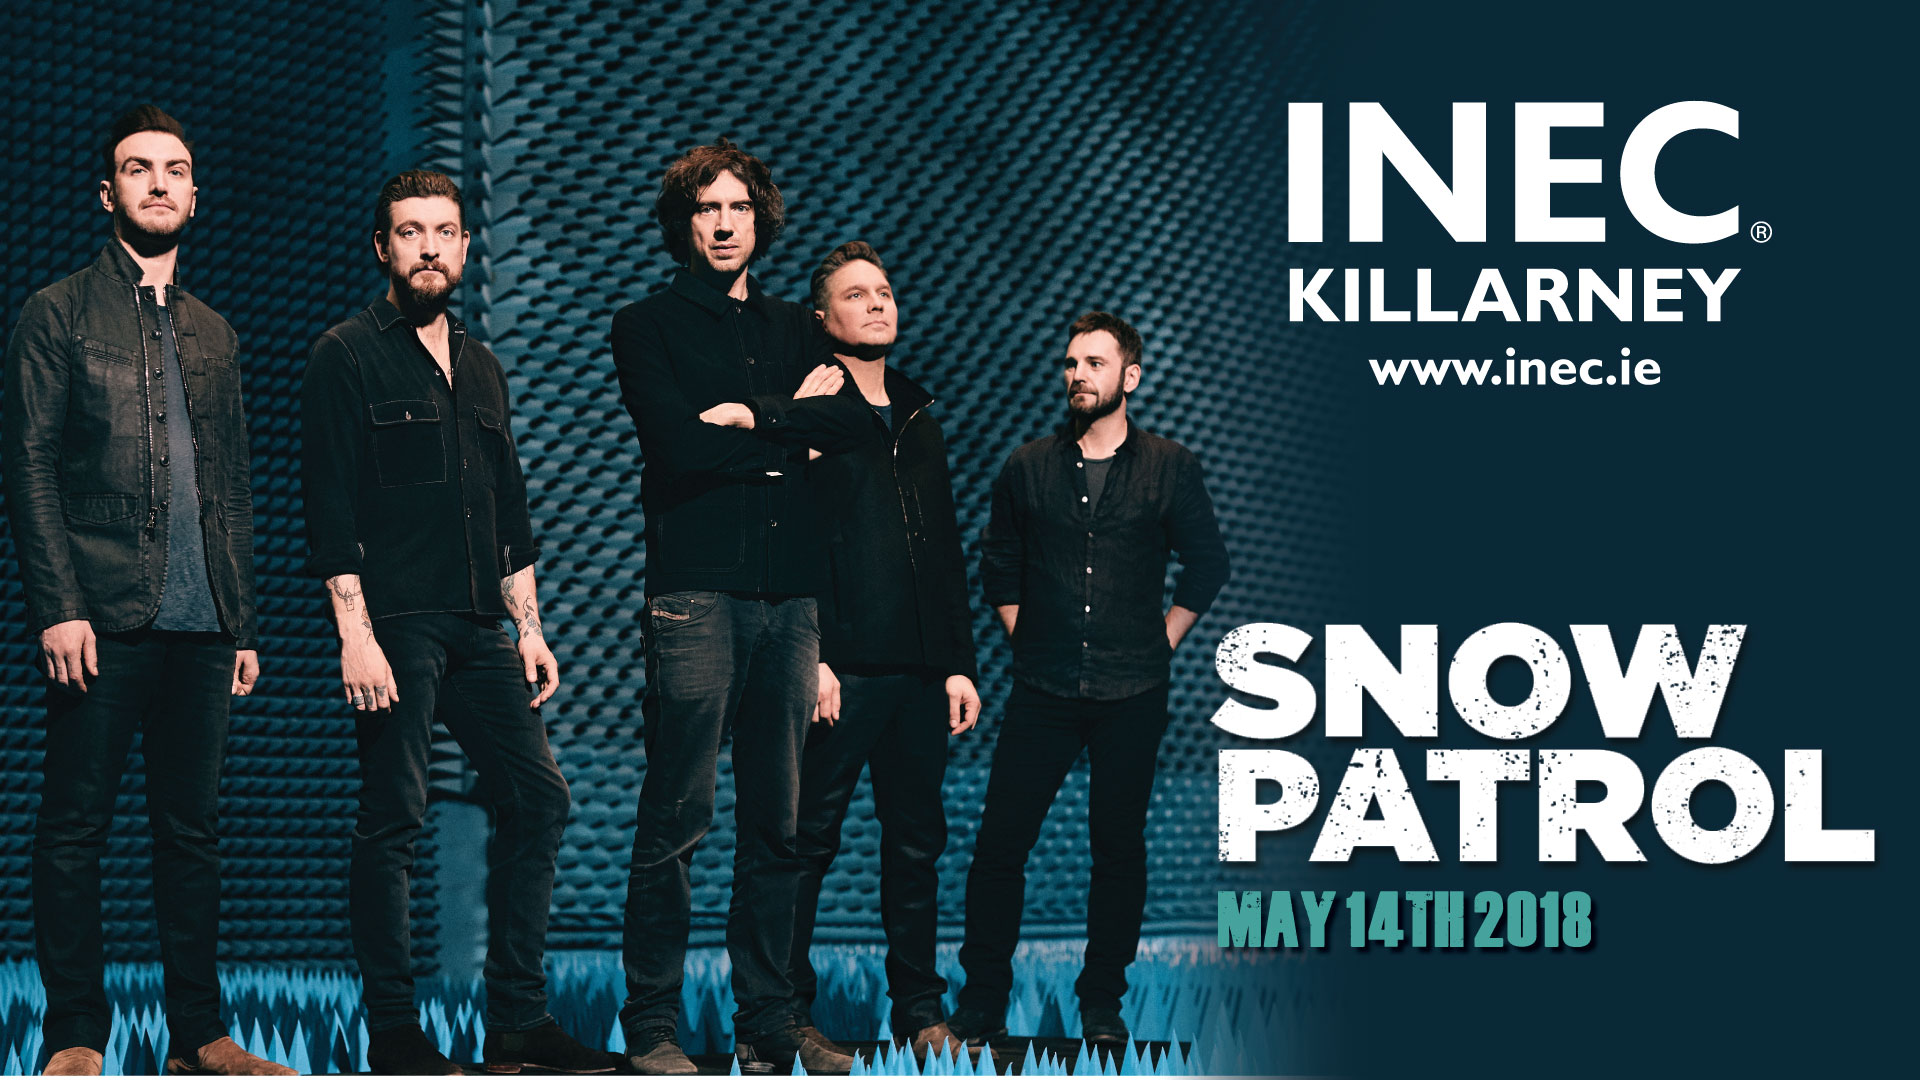 Snow Patrol return to the INEC Killarney on MAy 14th 2018